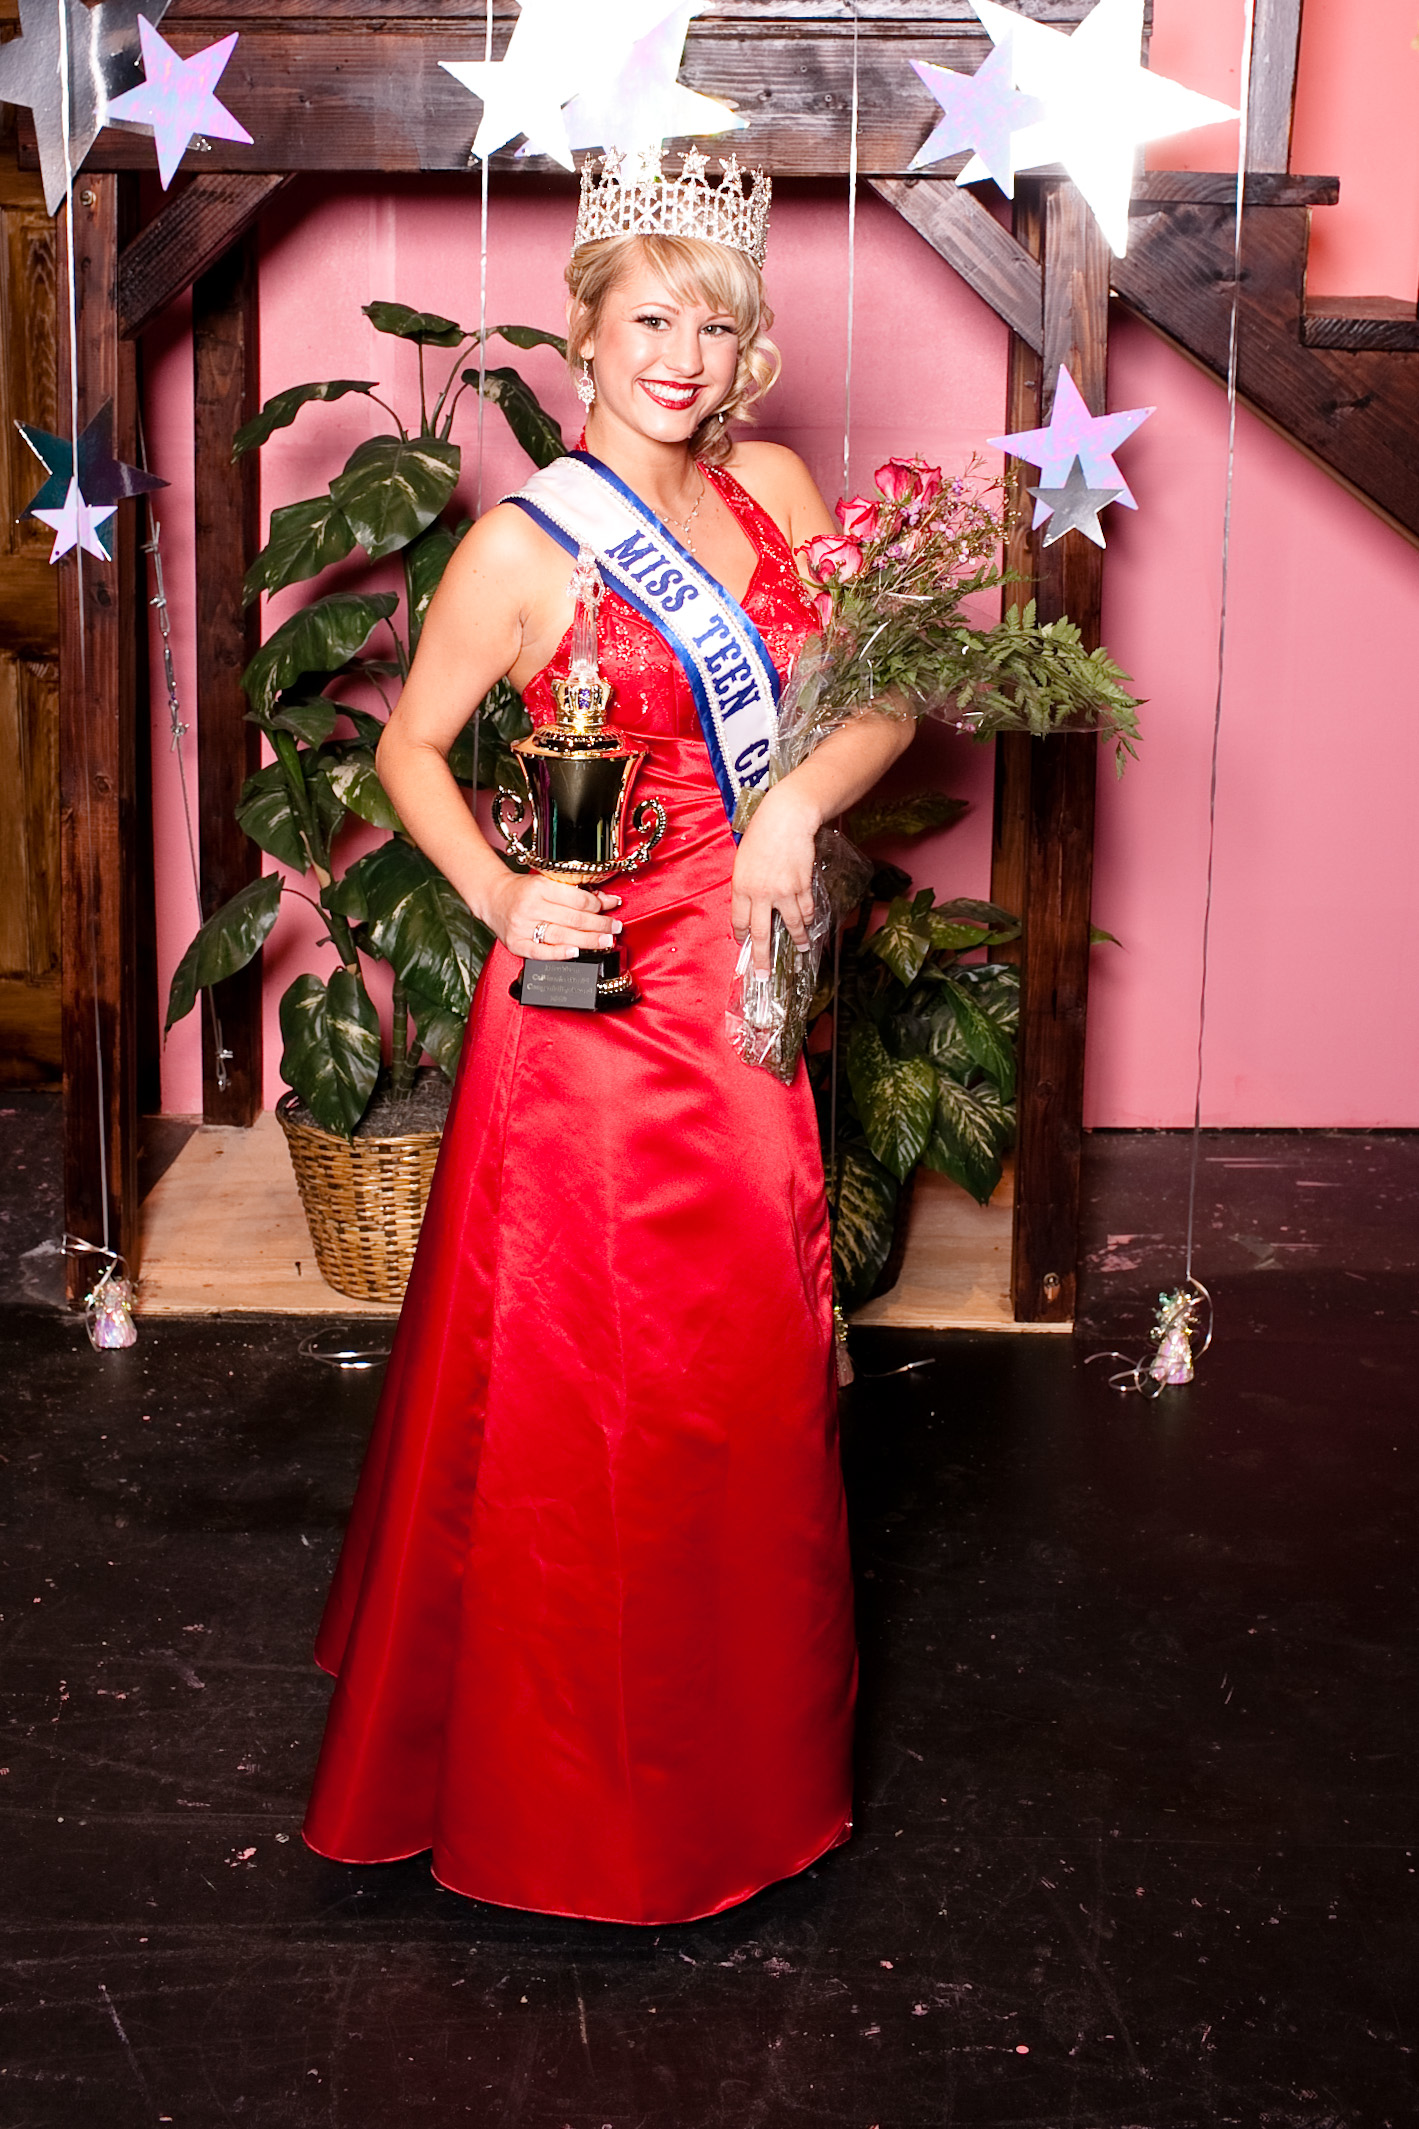 Olmstead Wins The Miss Teen California Beauty Pageant Submitted By